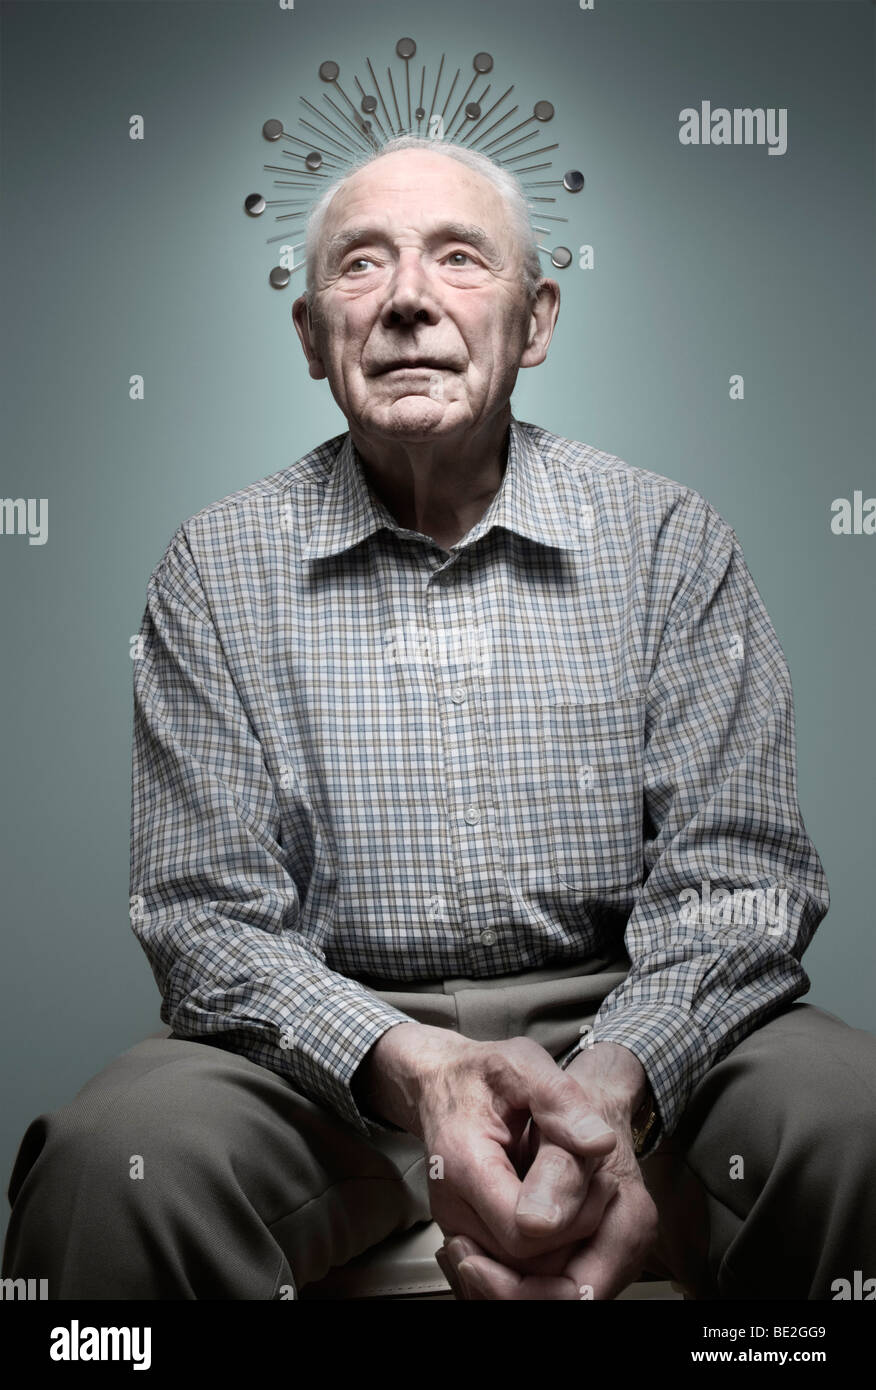 An elderly man with a halo formed by a clock - Stock Image